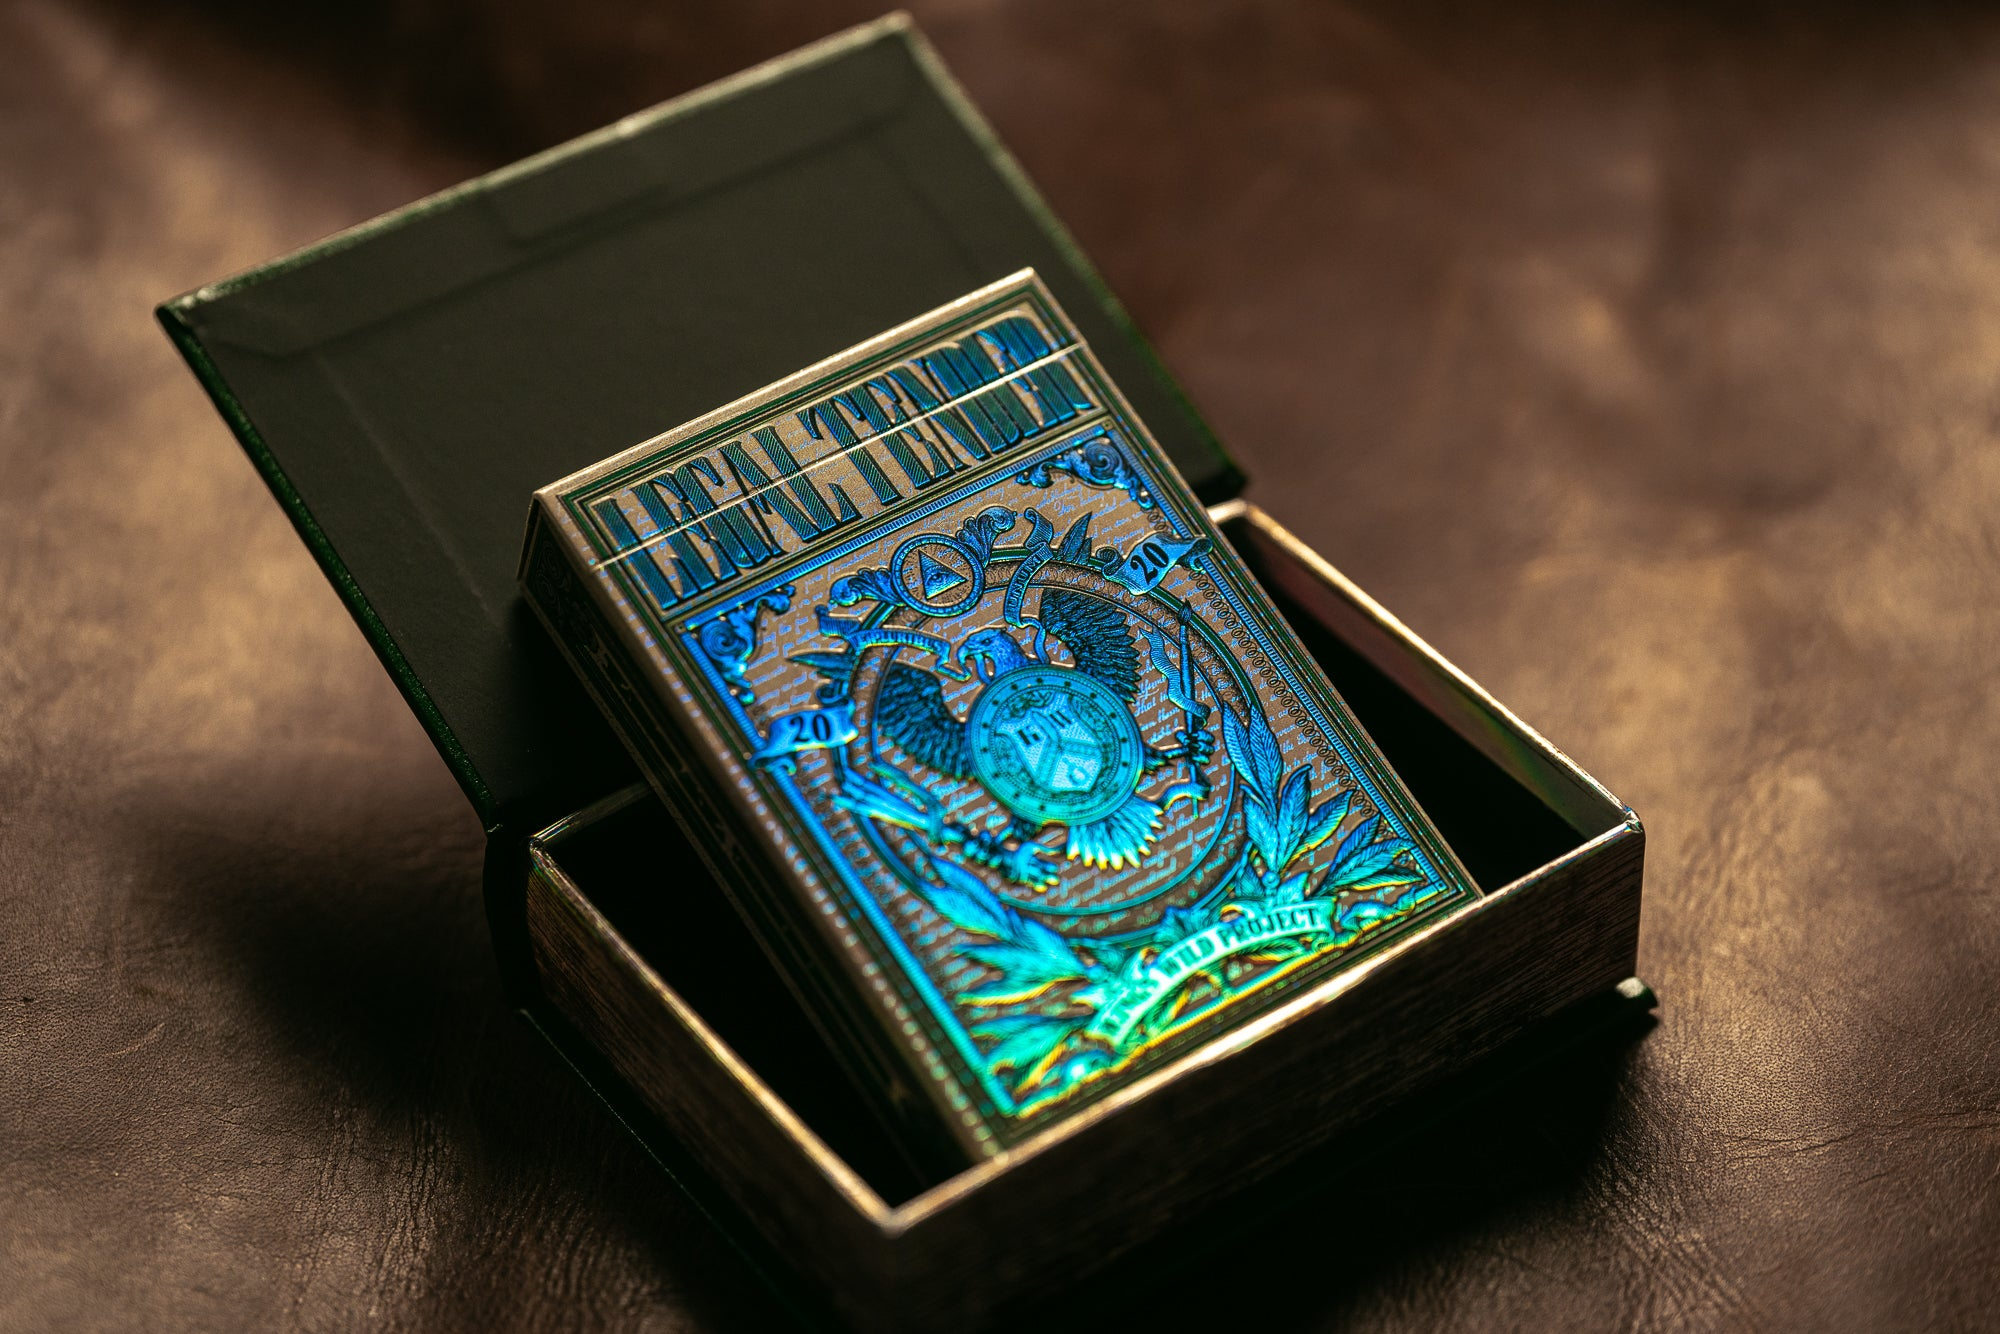 Holographic Gilded Legal Tender Book Box Edition